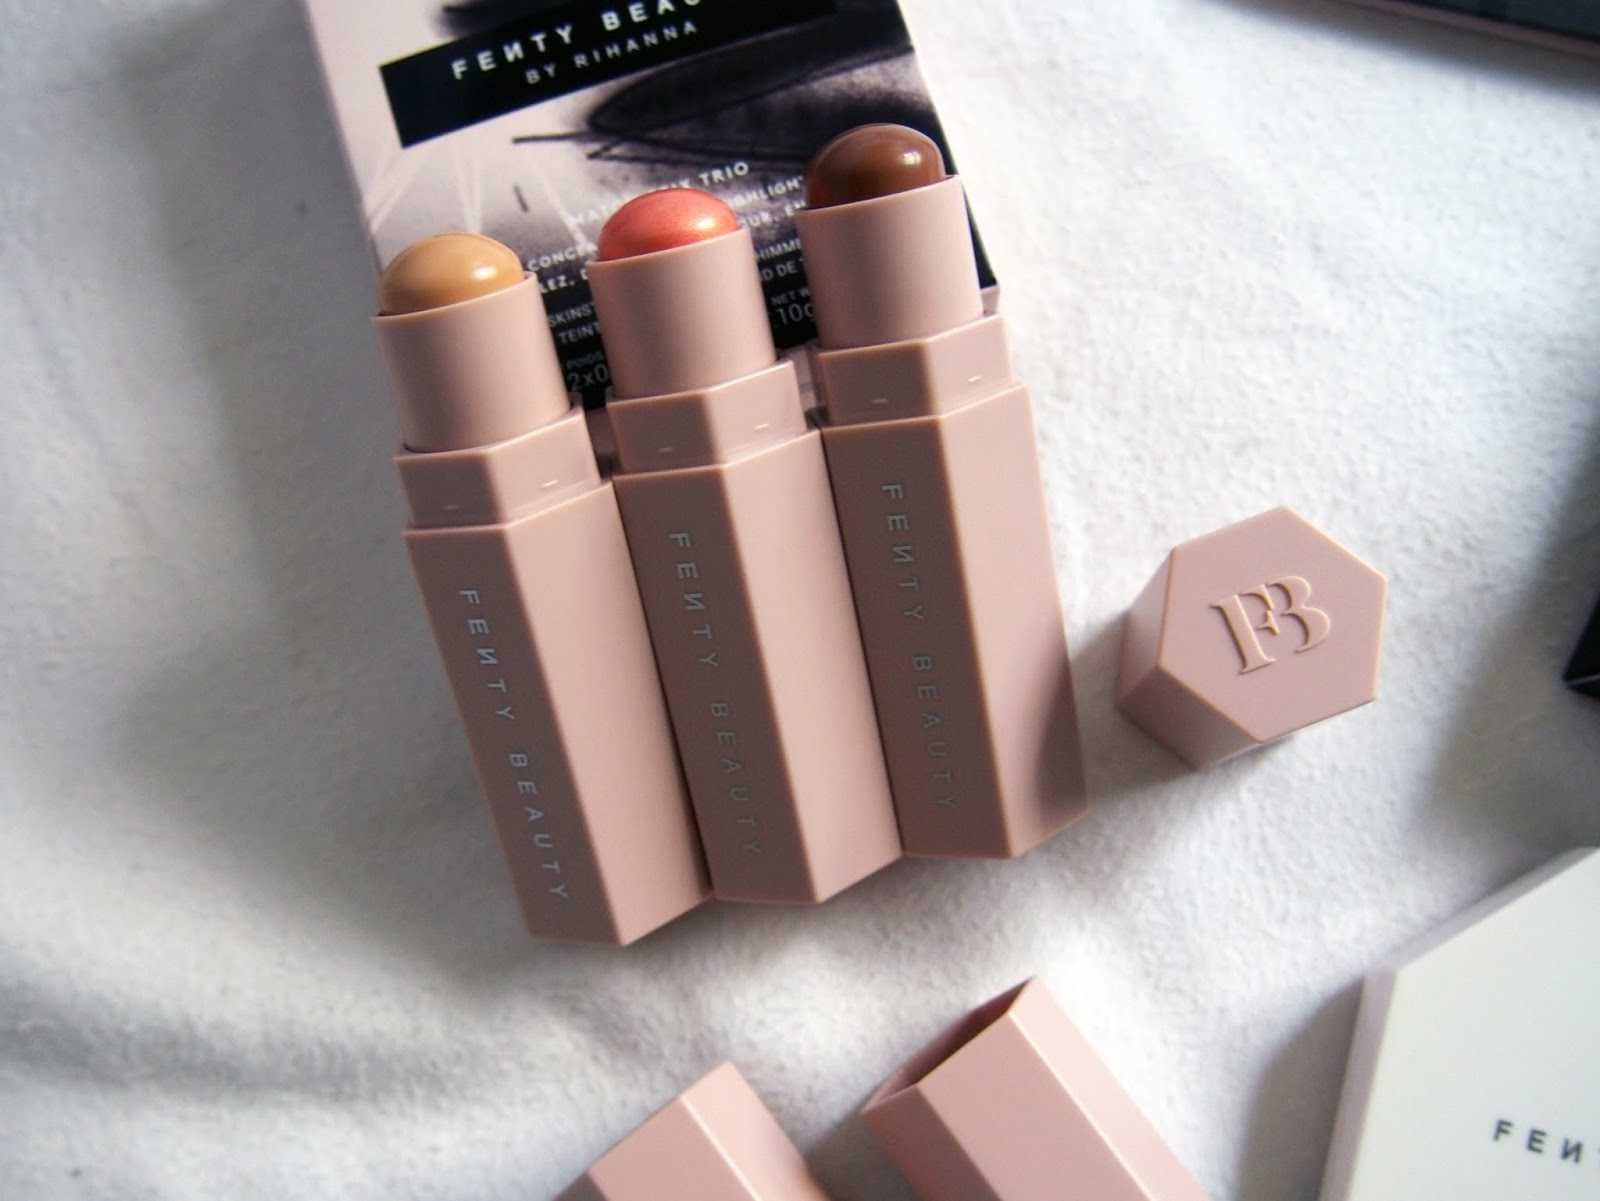 Корректор Fenty Beauty в Ангарске